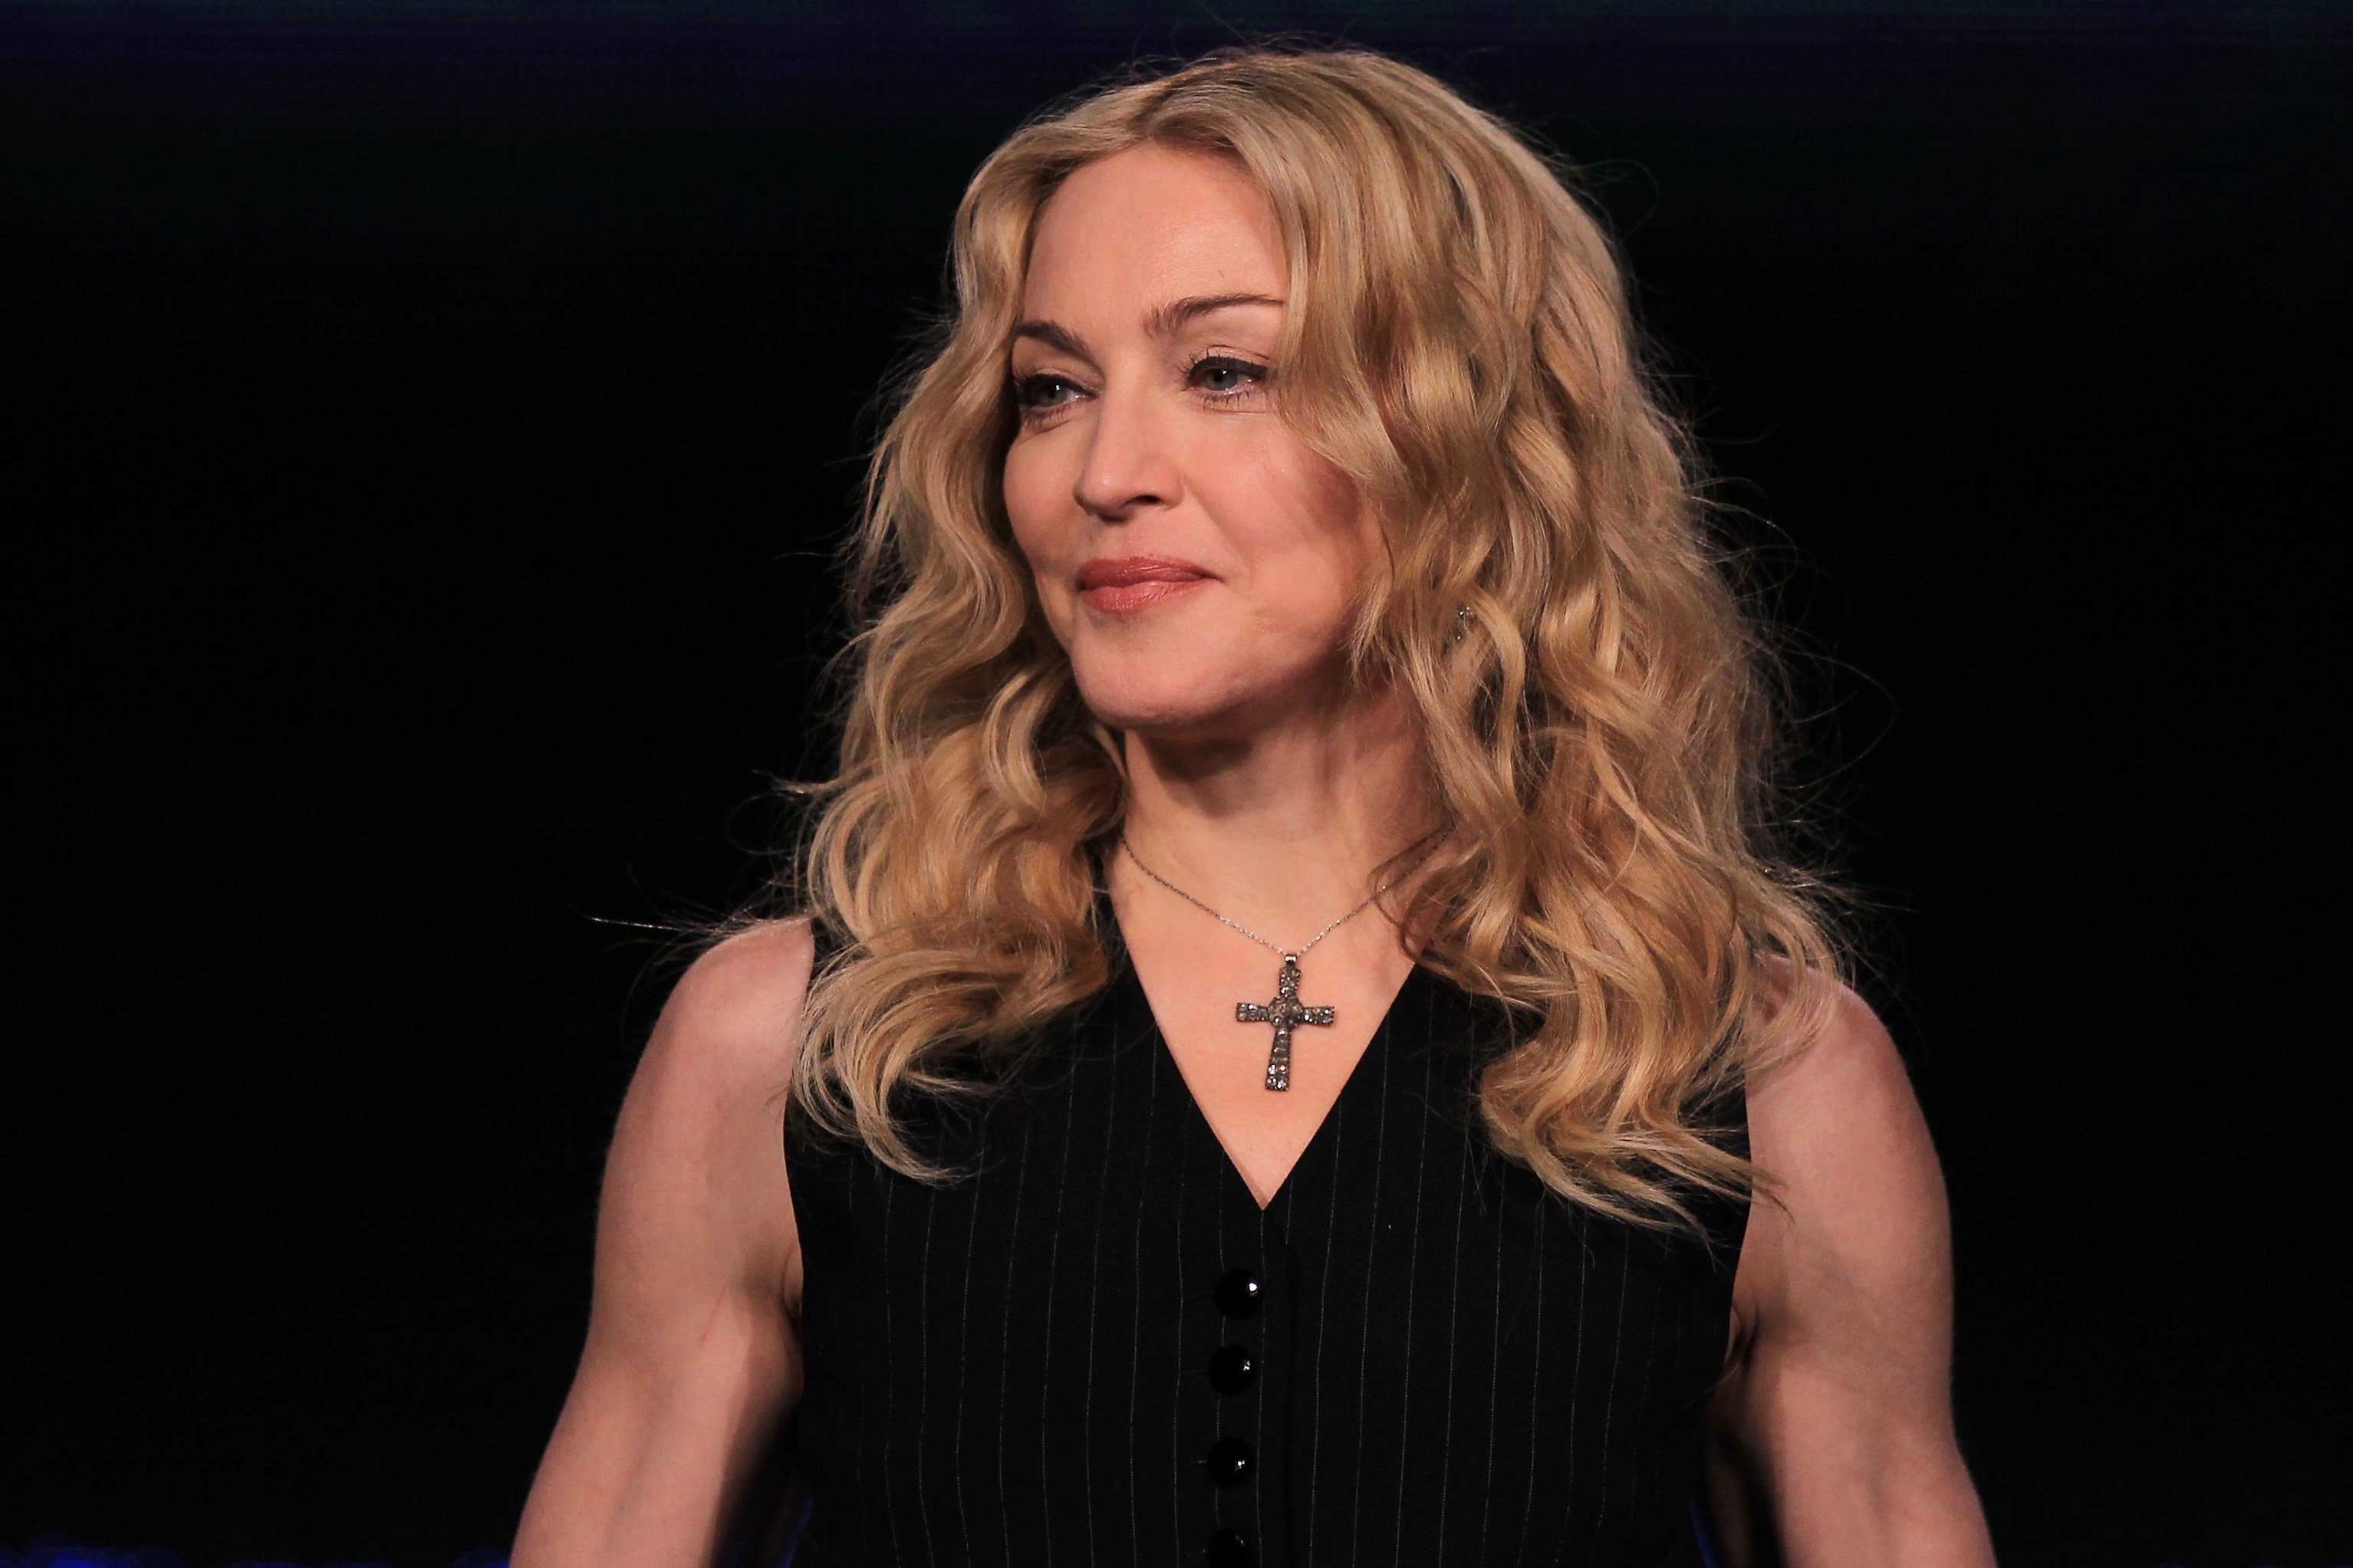 Madonna during a press conference for the Bridgestone Super Bowl XLVI halftime show at the Super Bowl XLVI Media Center on February 2, 2012. | Photo: GettyImages